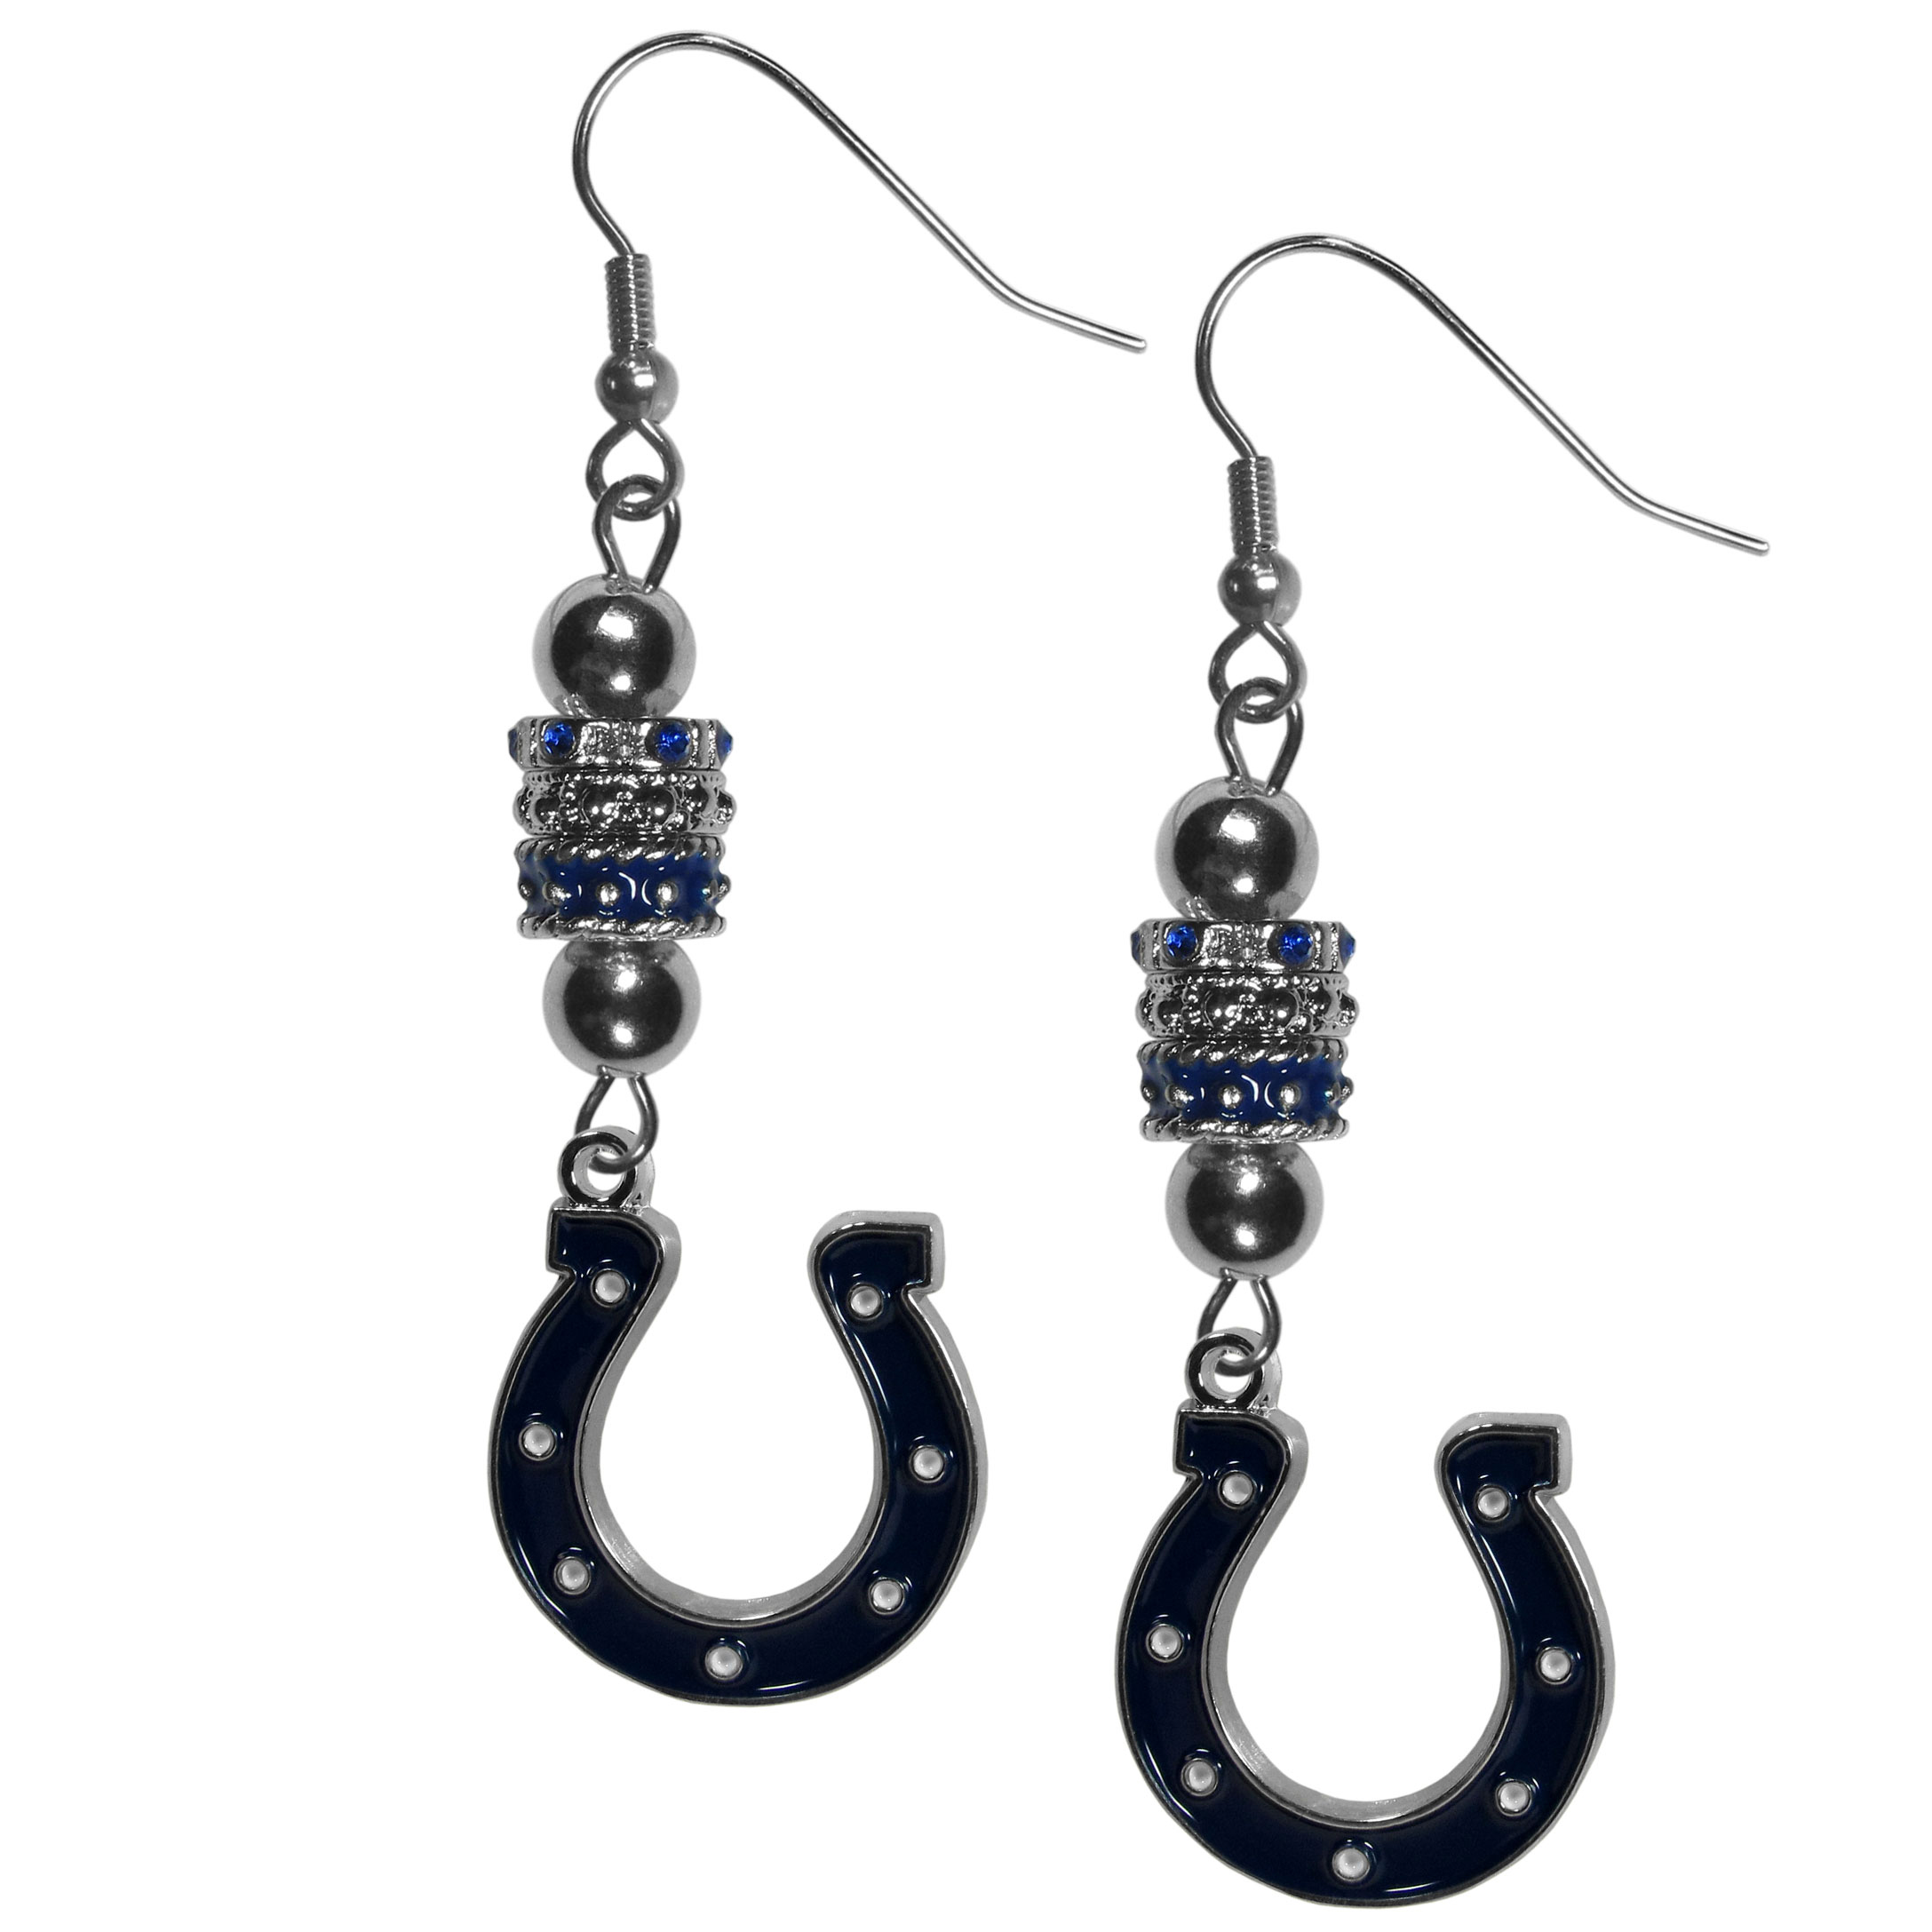 Indianapolis Colts Euro Bead Earrings - These beautiful euro style earrings feature 3 euro beads and a detailed Indianapolis Colts charm on hypoallergenic fishhook posts.